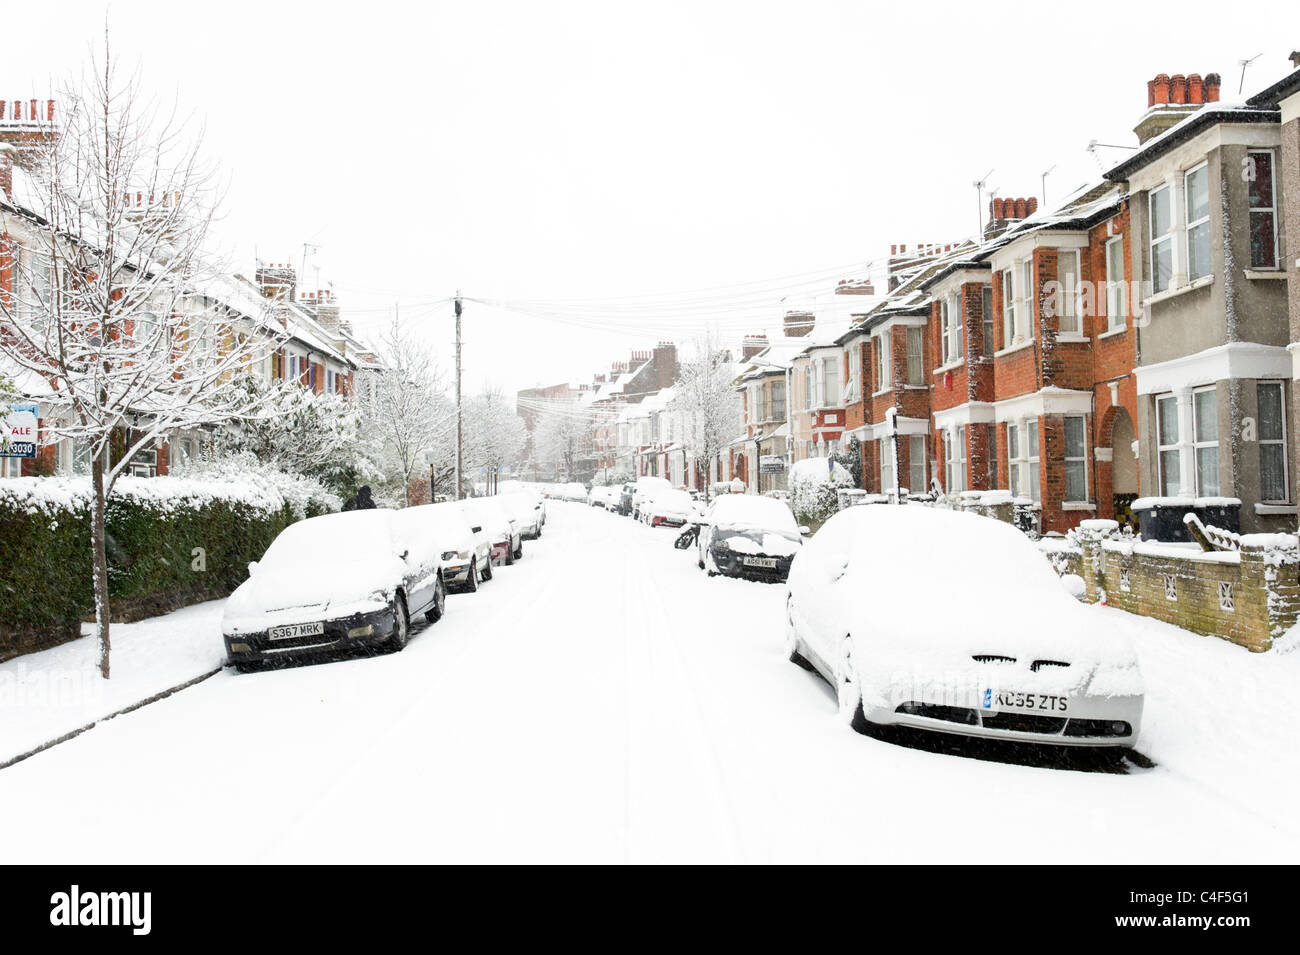 Voitures couvertes de neige dans la rue résidentielle, London, UK Photo Stock